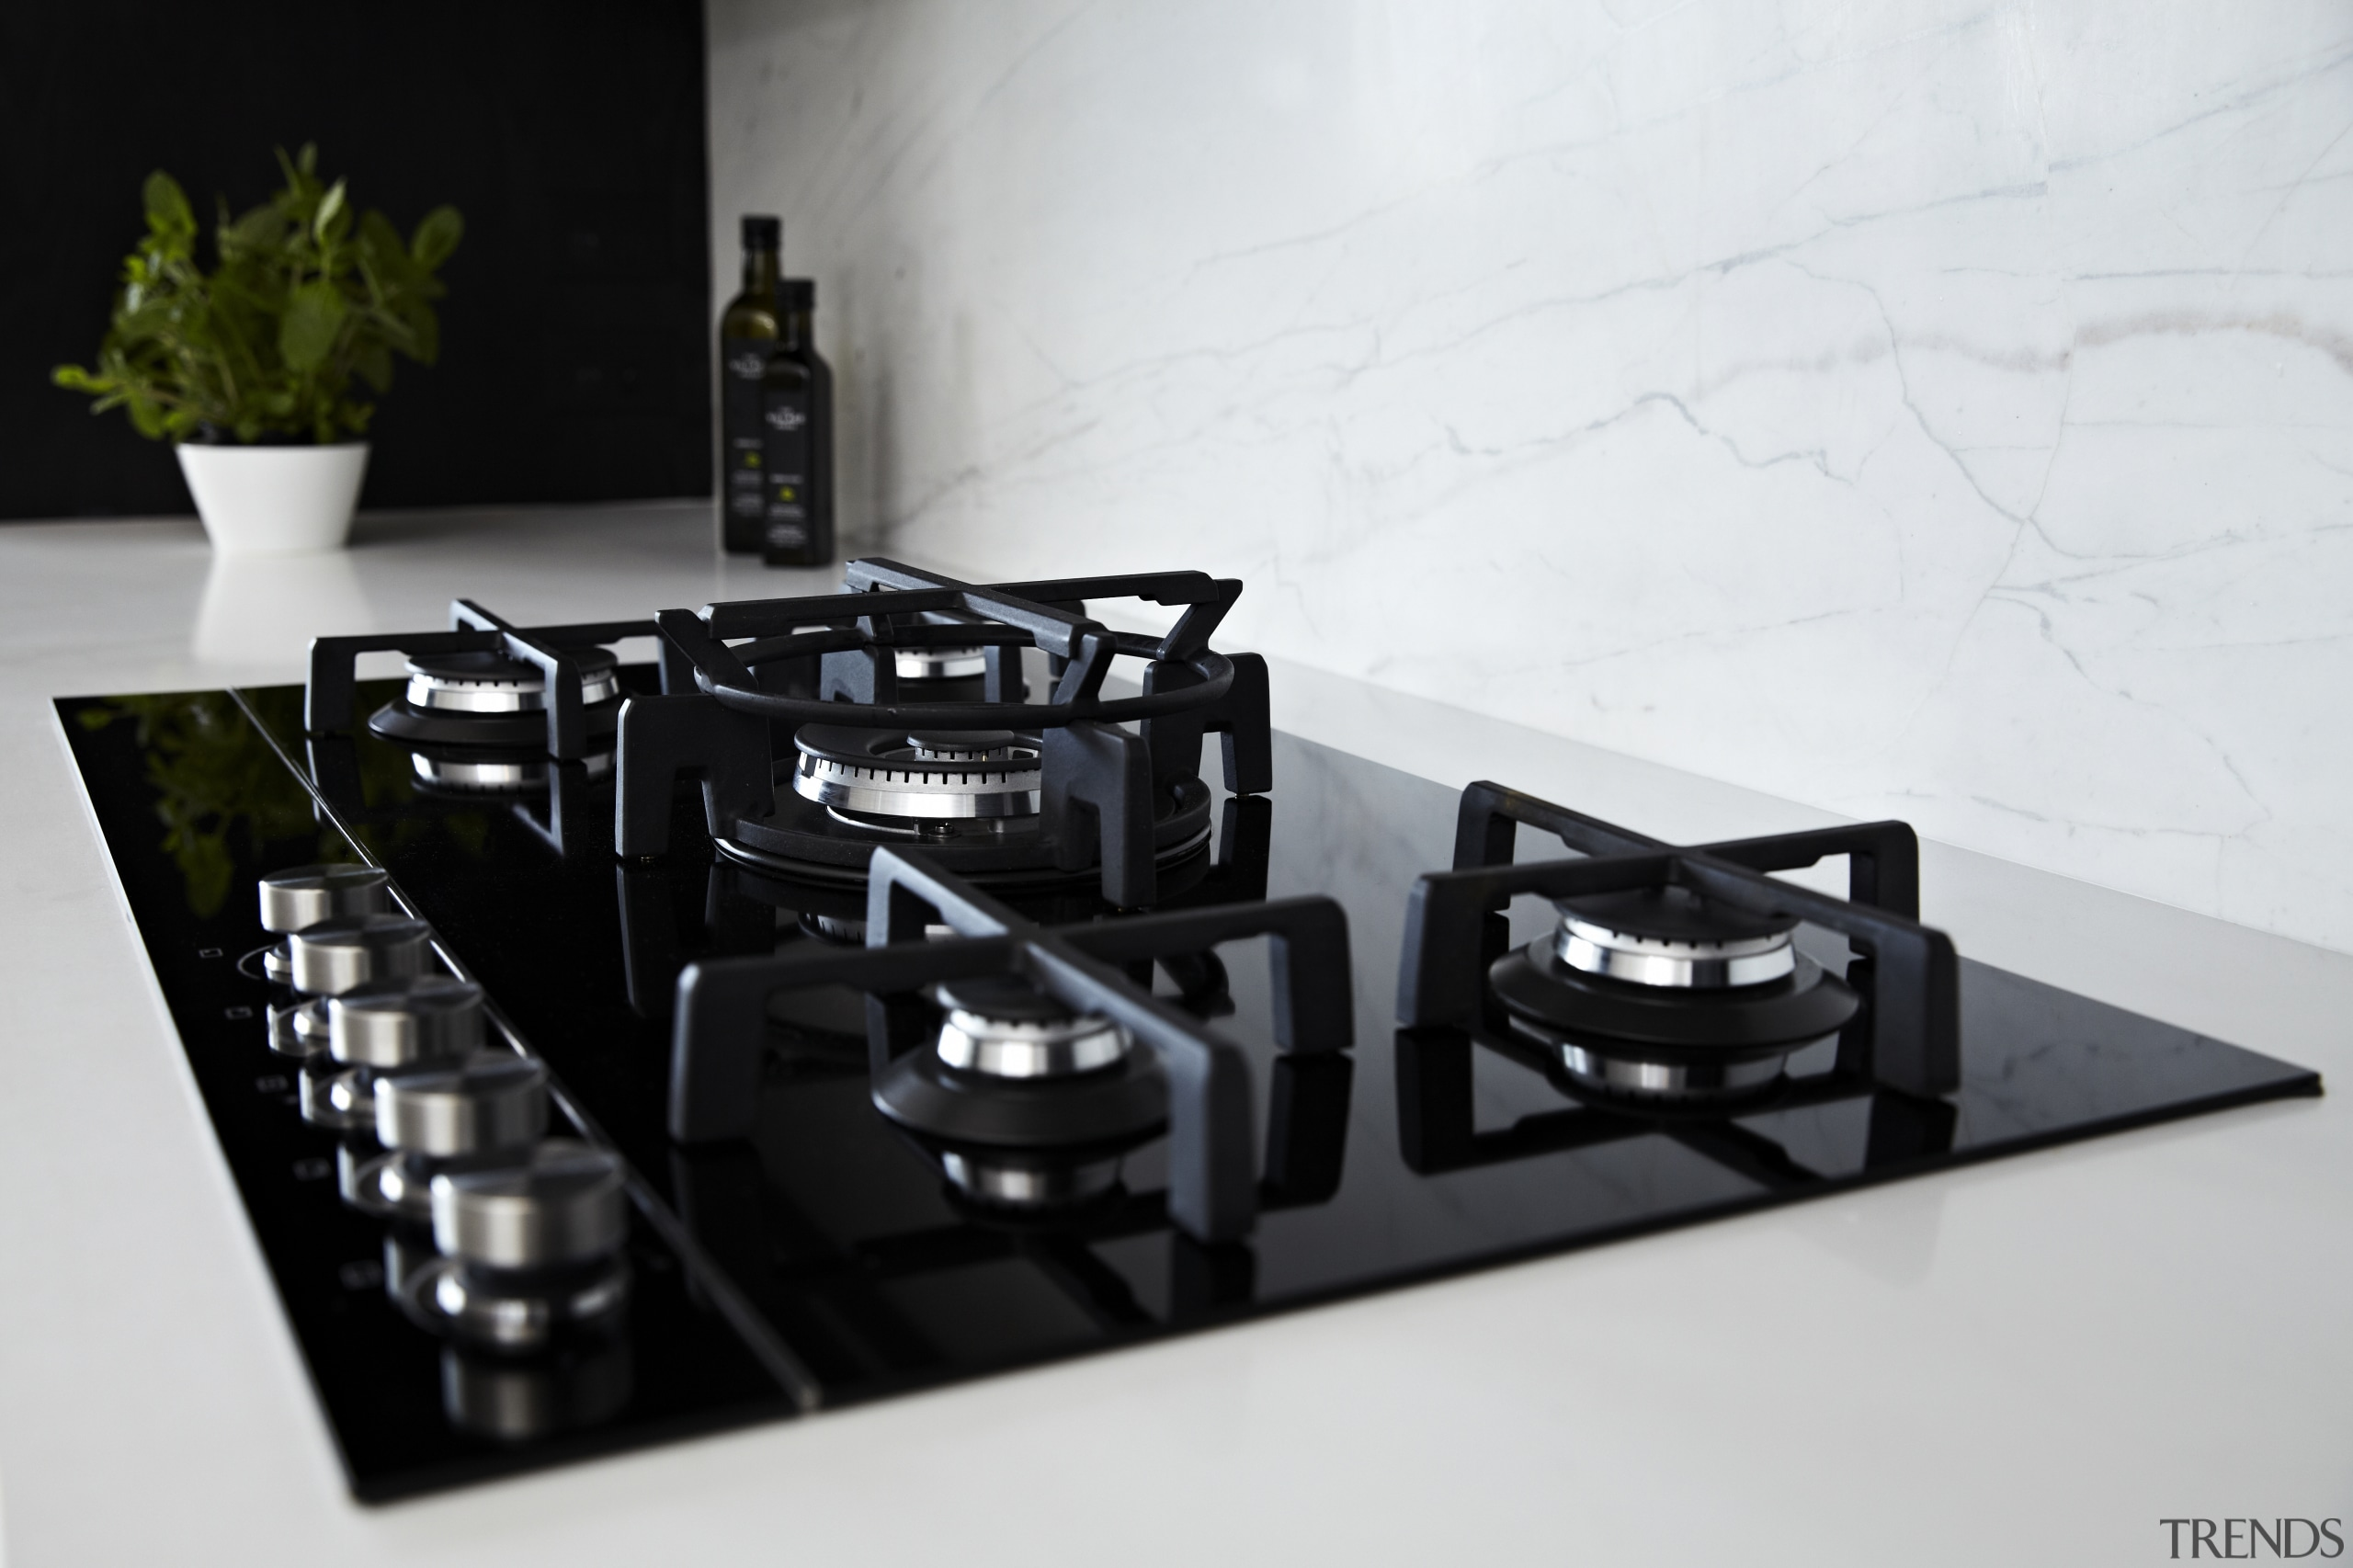 Fisher & Paykel appliances, including a gas cooktop, product, white, black